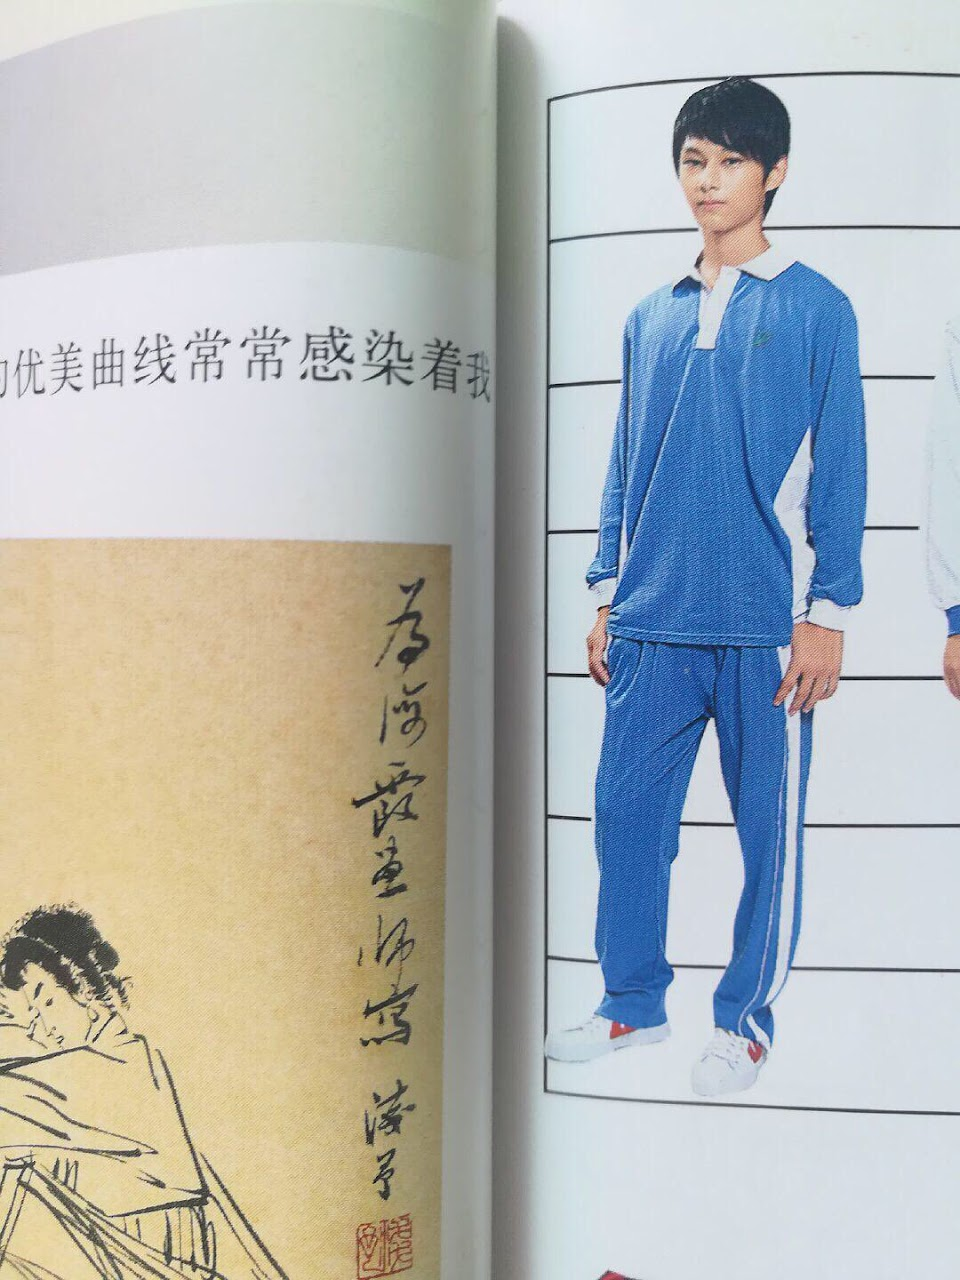 seventeen jun chinese textbook